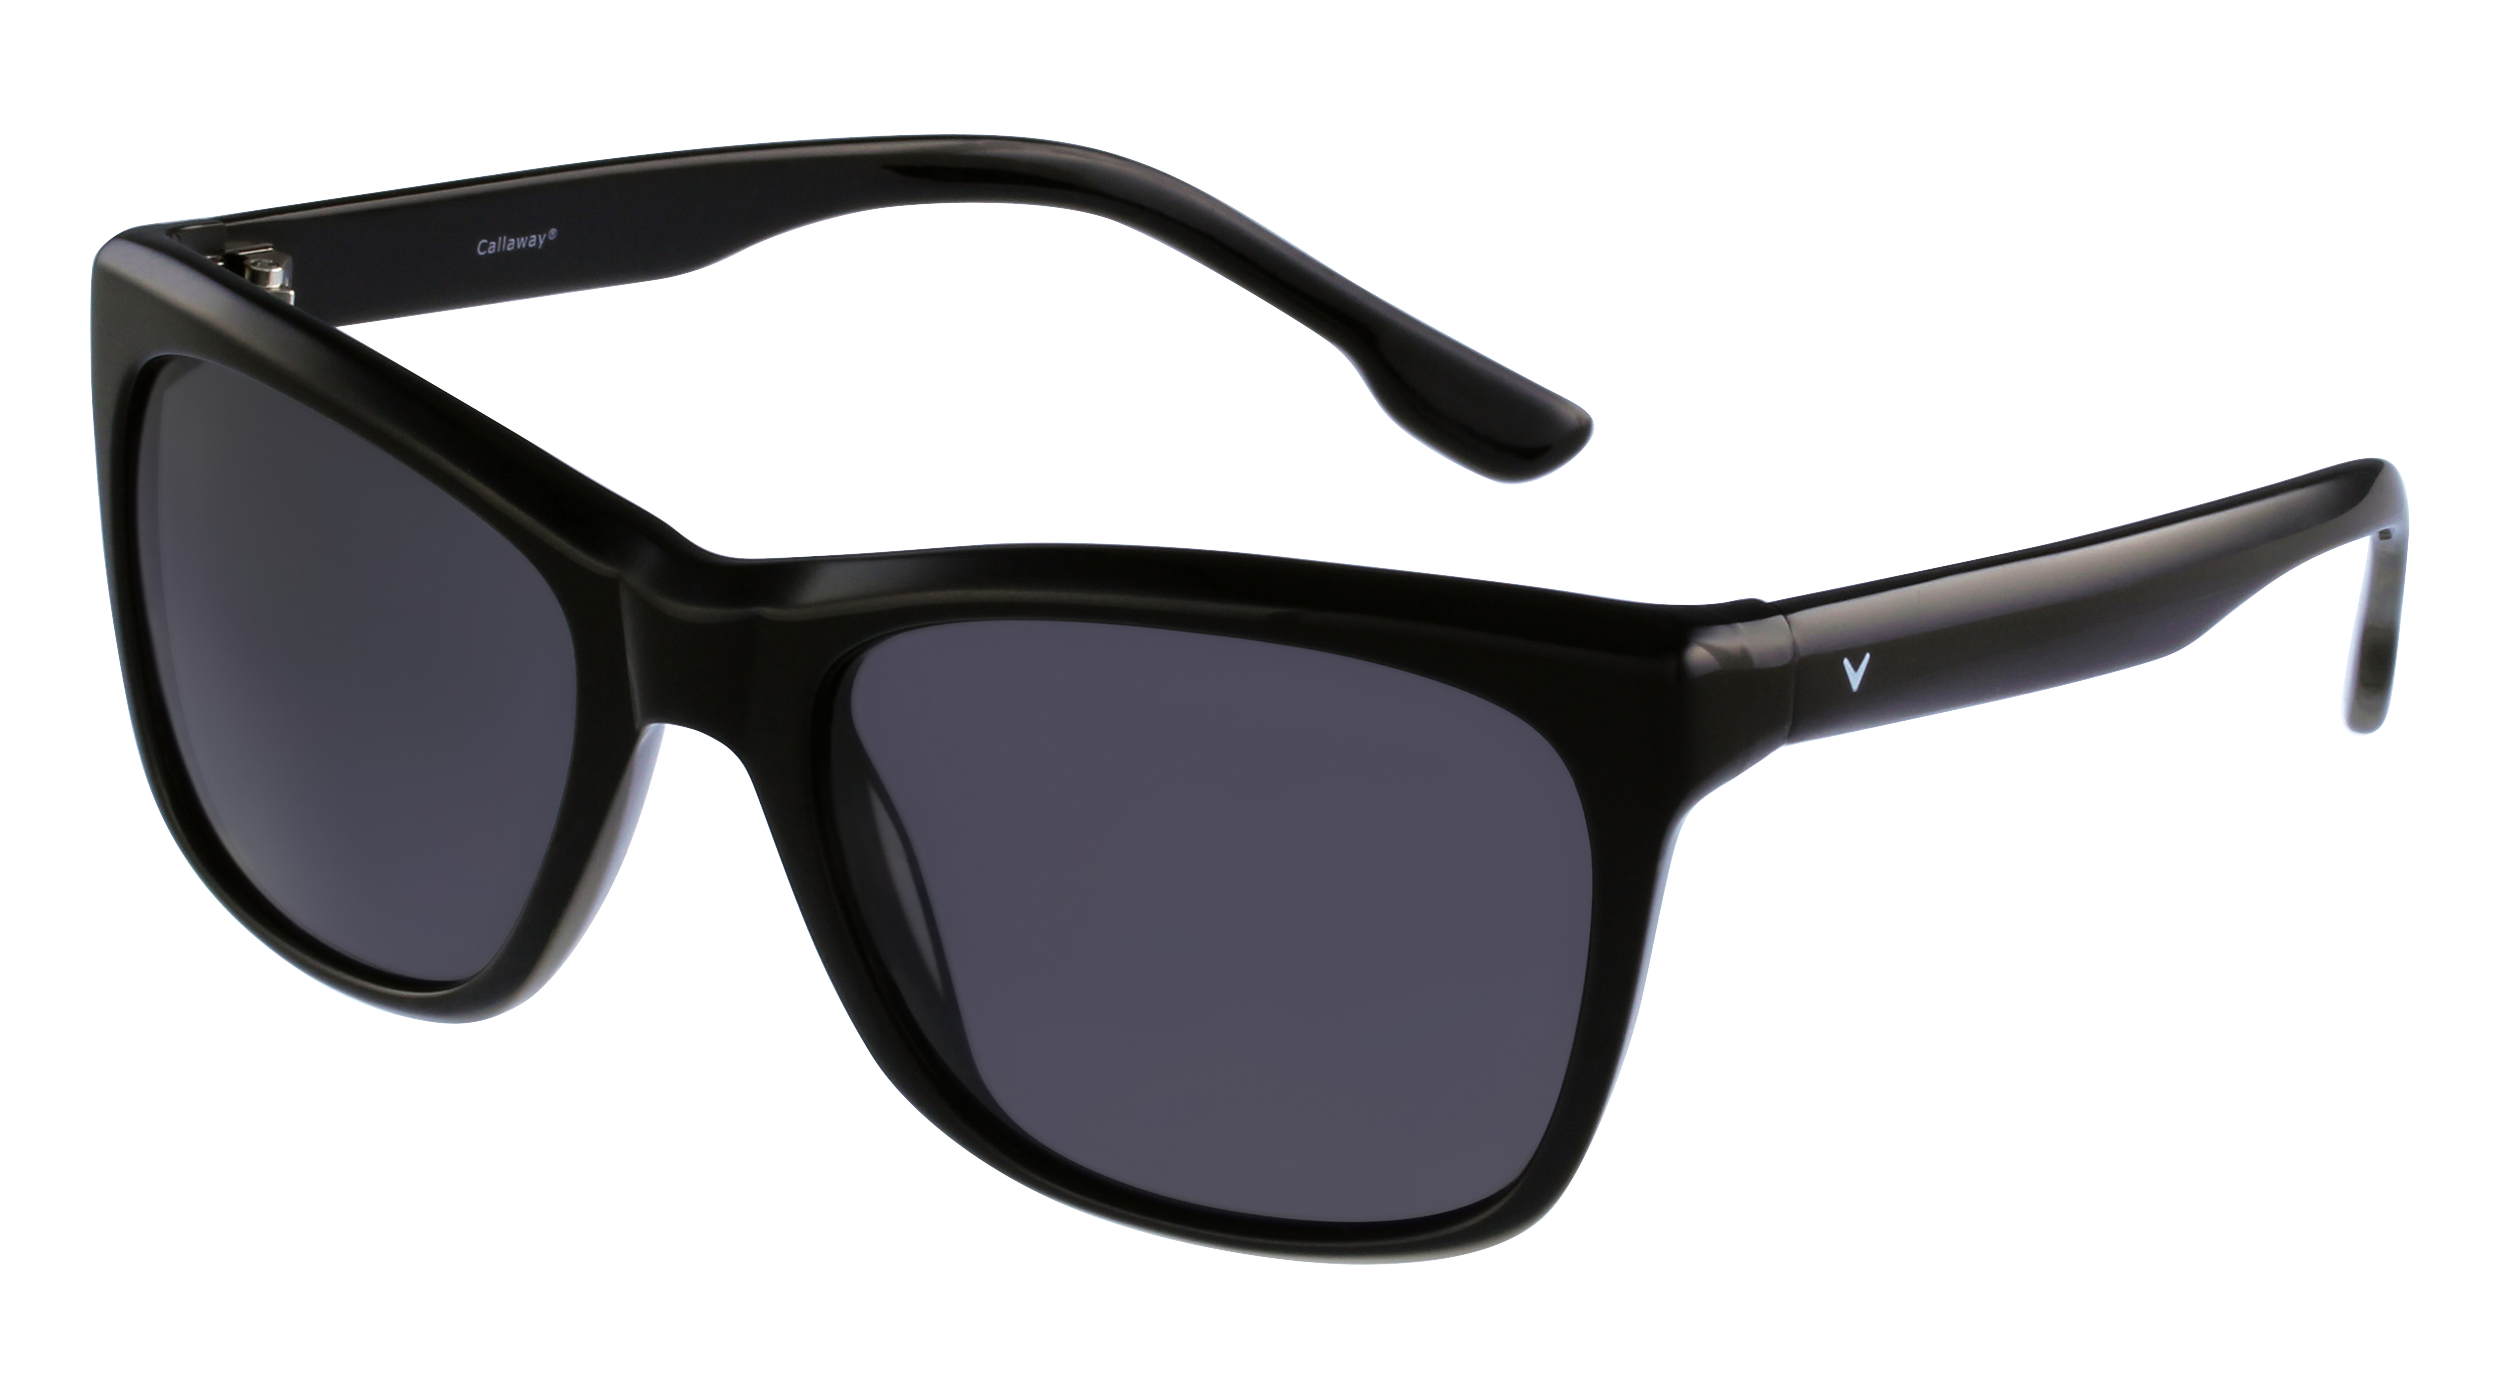 Virtual Frame Finder Glasses : Callaway 11 Black Mens Sunglasses - JCPenney Optical ...